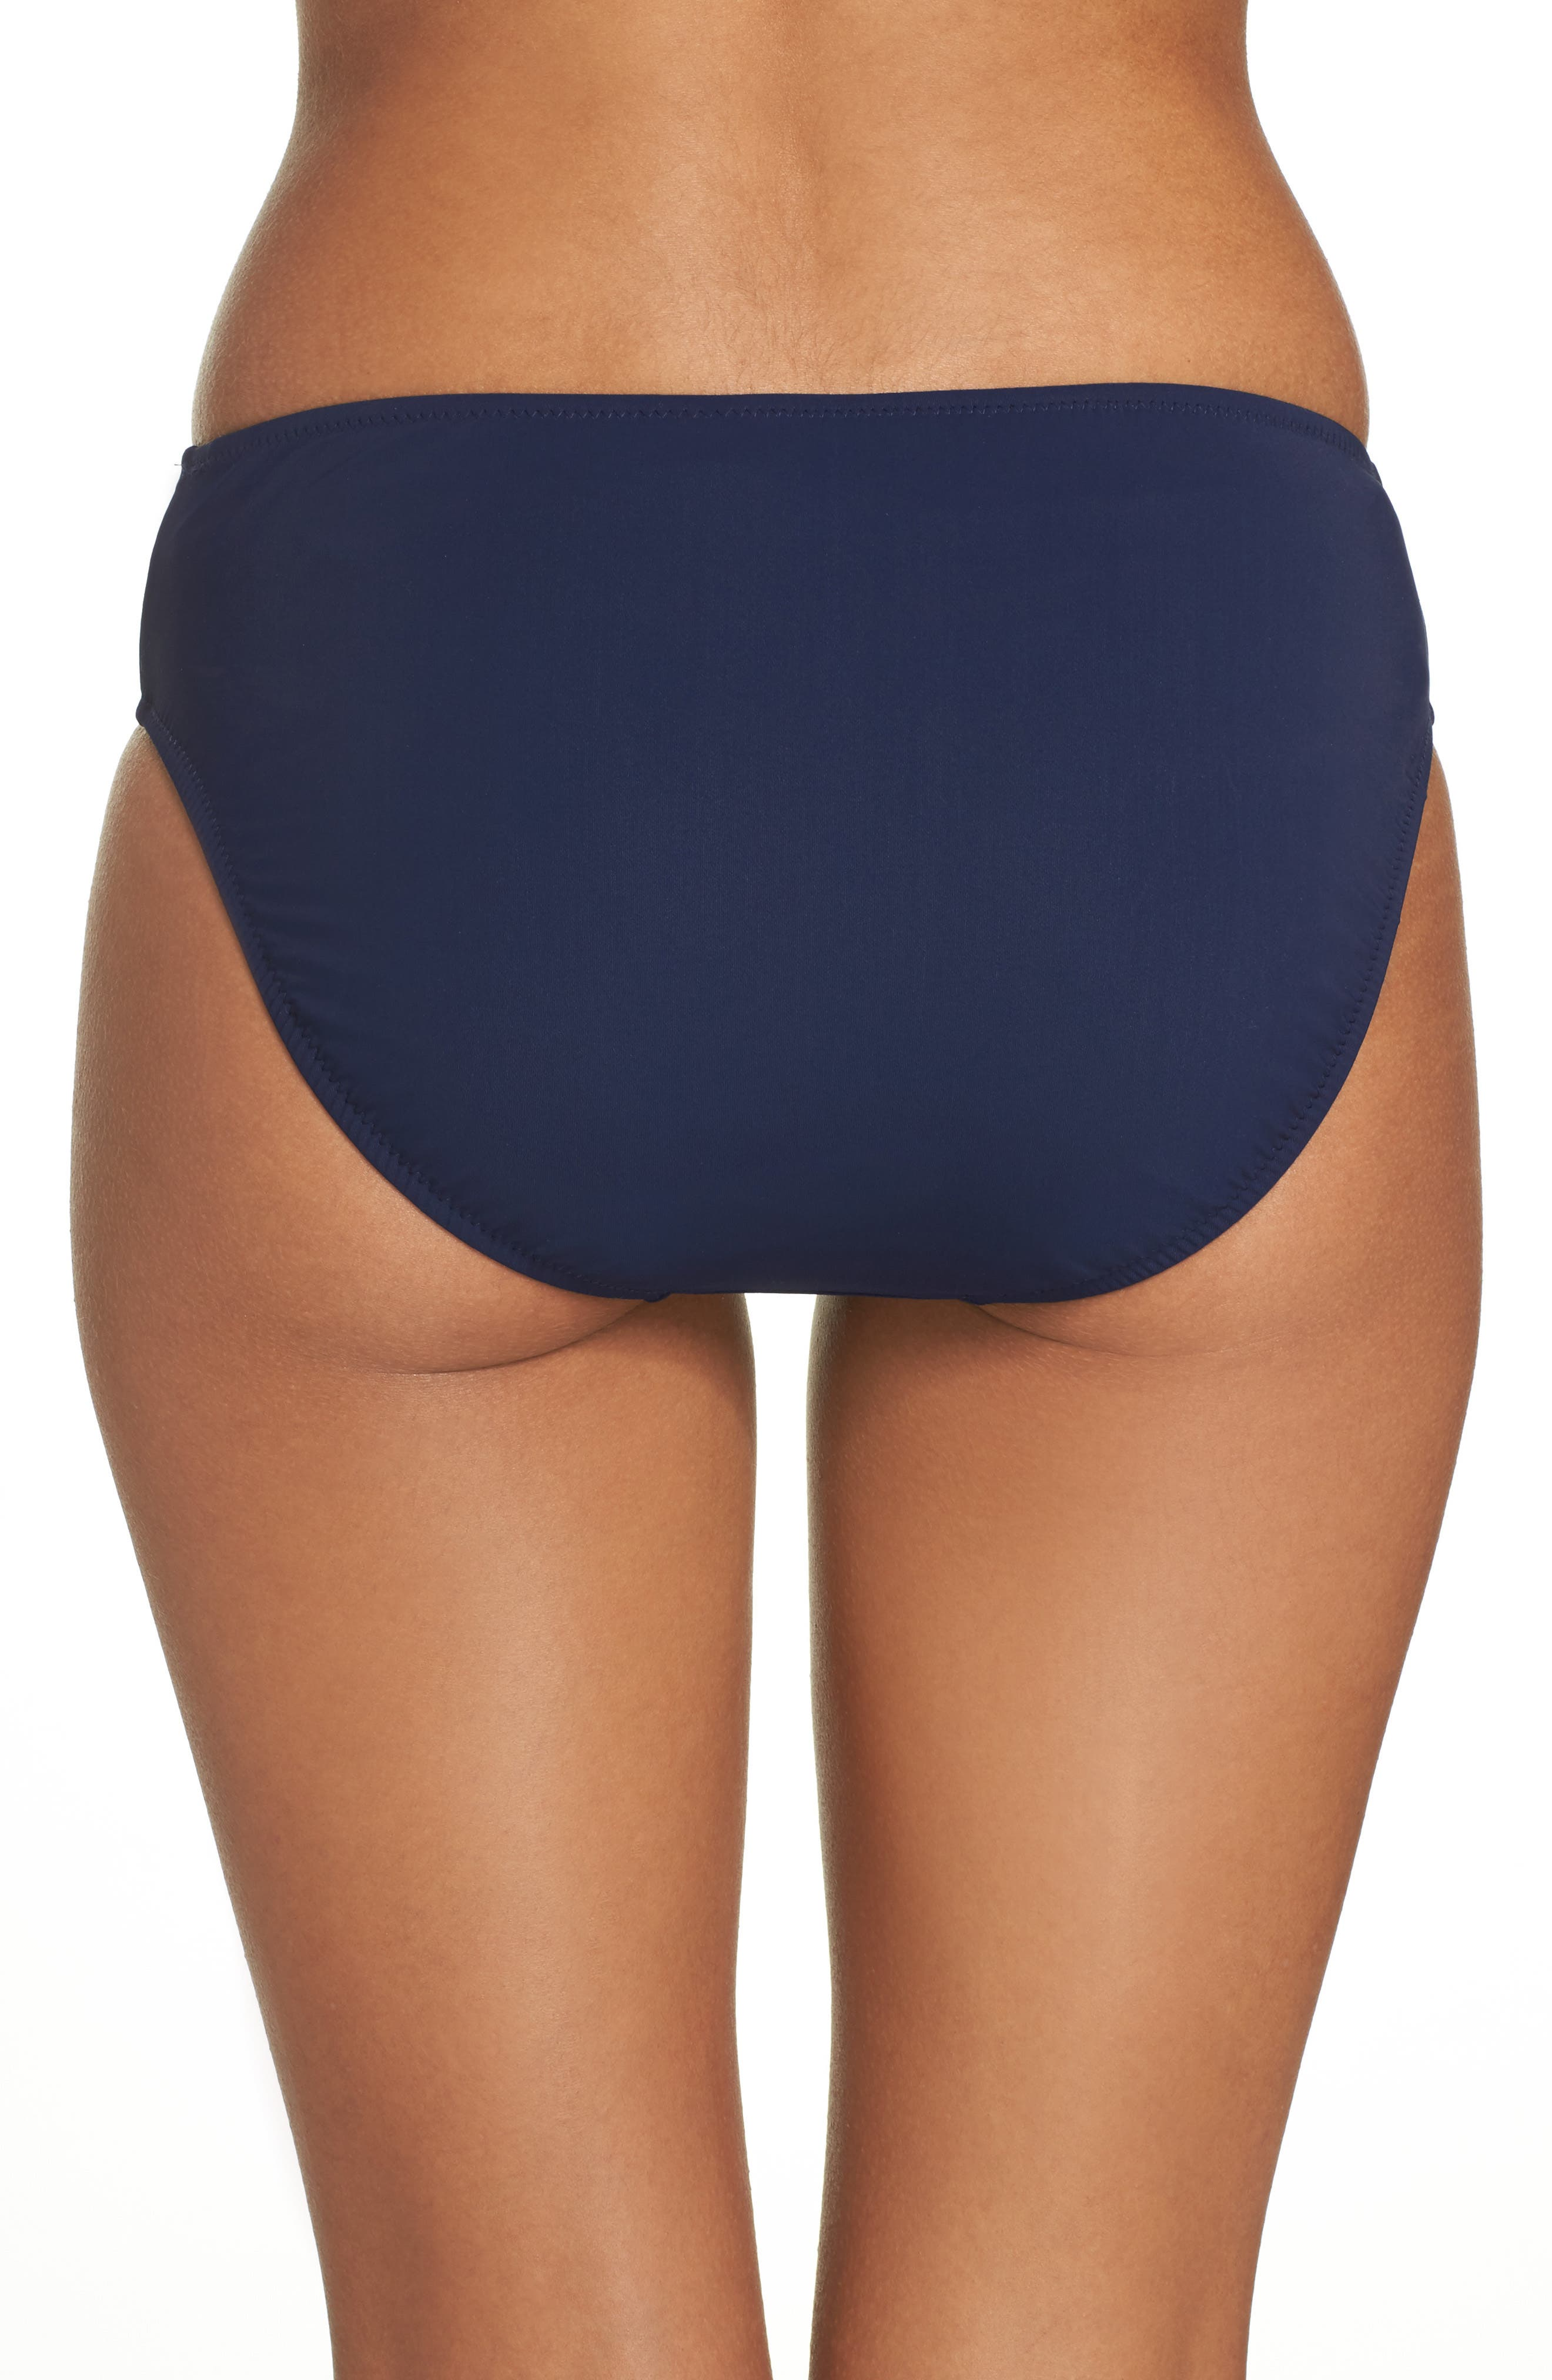 Alternate Image 2  - Profile by Gottex Hipster Bikini Bottoms